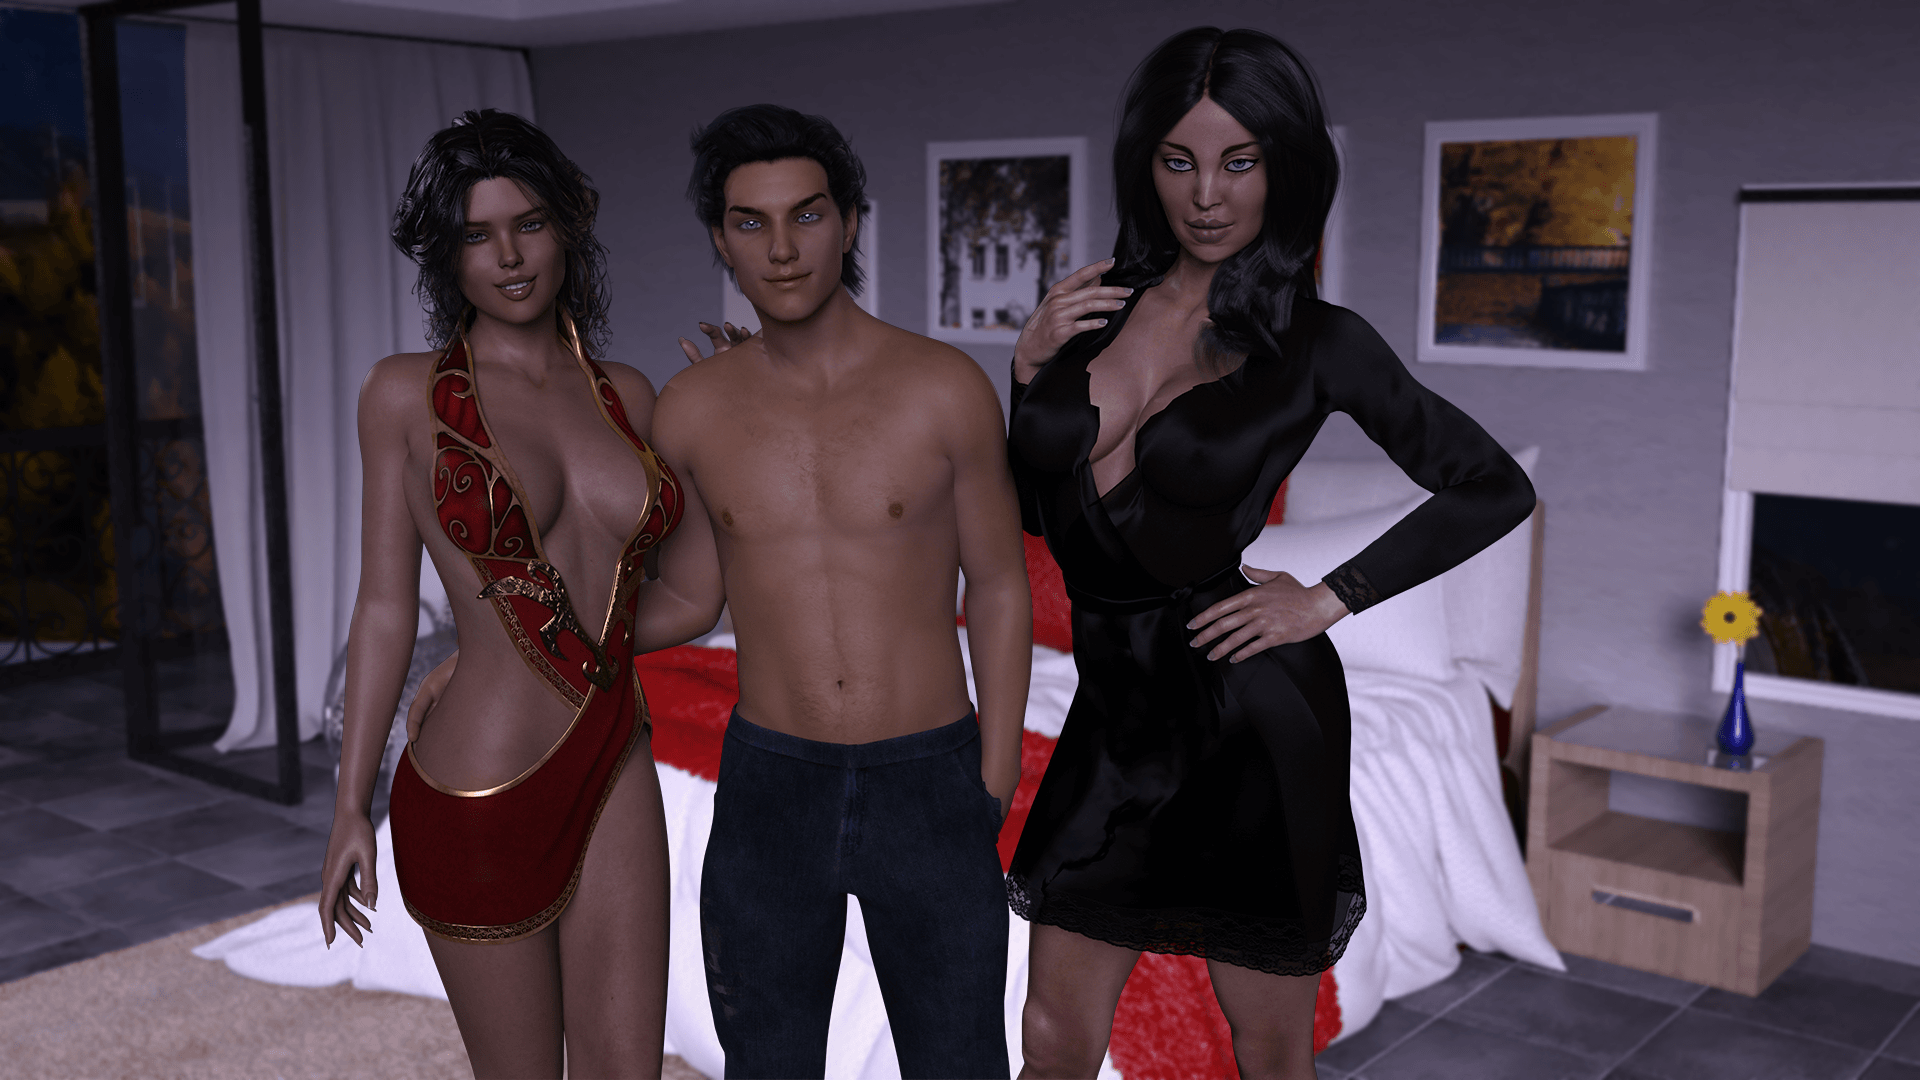 Lust Ascension Story – Version 0.2a - incest hentai game 4